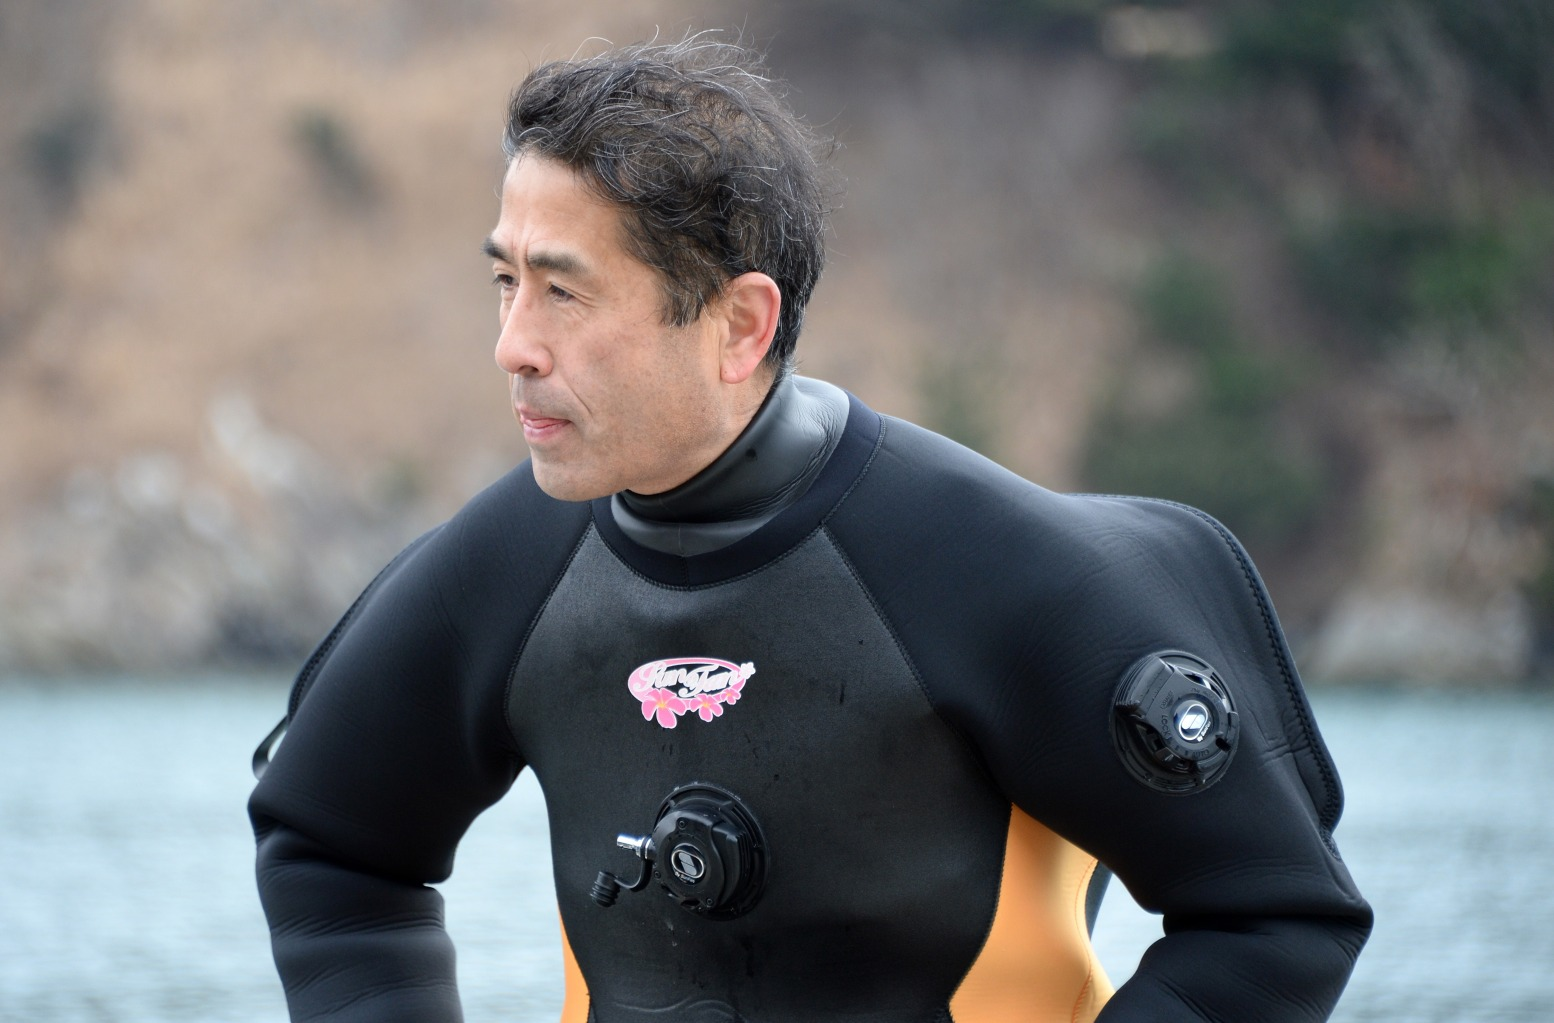 To go with story: Japan-Nuclear-Disaster-Diving,FEATURE by Harumi Ozawa Yasuo Takamatsu looks out to sea as he sits on the edge of a boat after a diving lesson in Onagawa, Miyagi Prefecture, on March 2, 2014. Te 57-year-old bus driver started taking scuba diving lessons in November to find his wife who is still missing after the 3/11 tsunami. AFP PHOTO/Toru YAMANAKA (Photo credit should read TORU YAMANAKA/AFP/Getty Images)